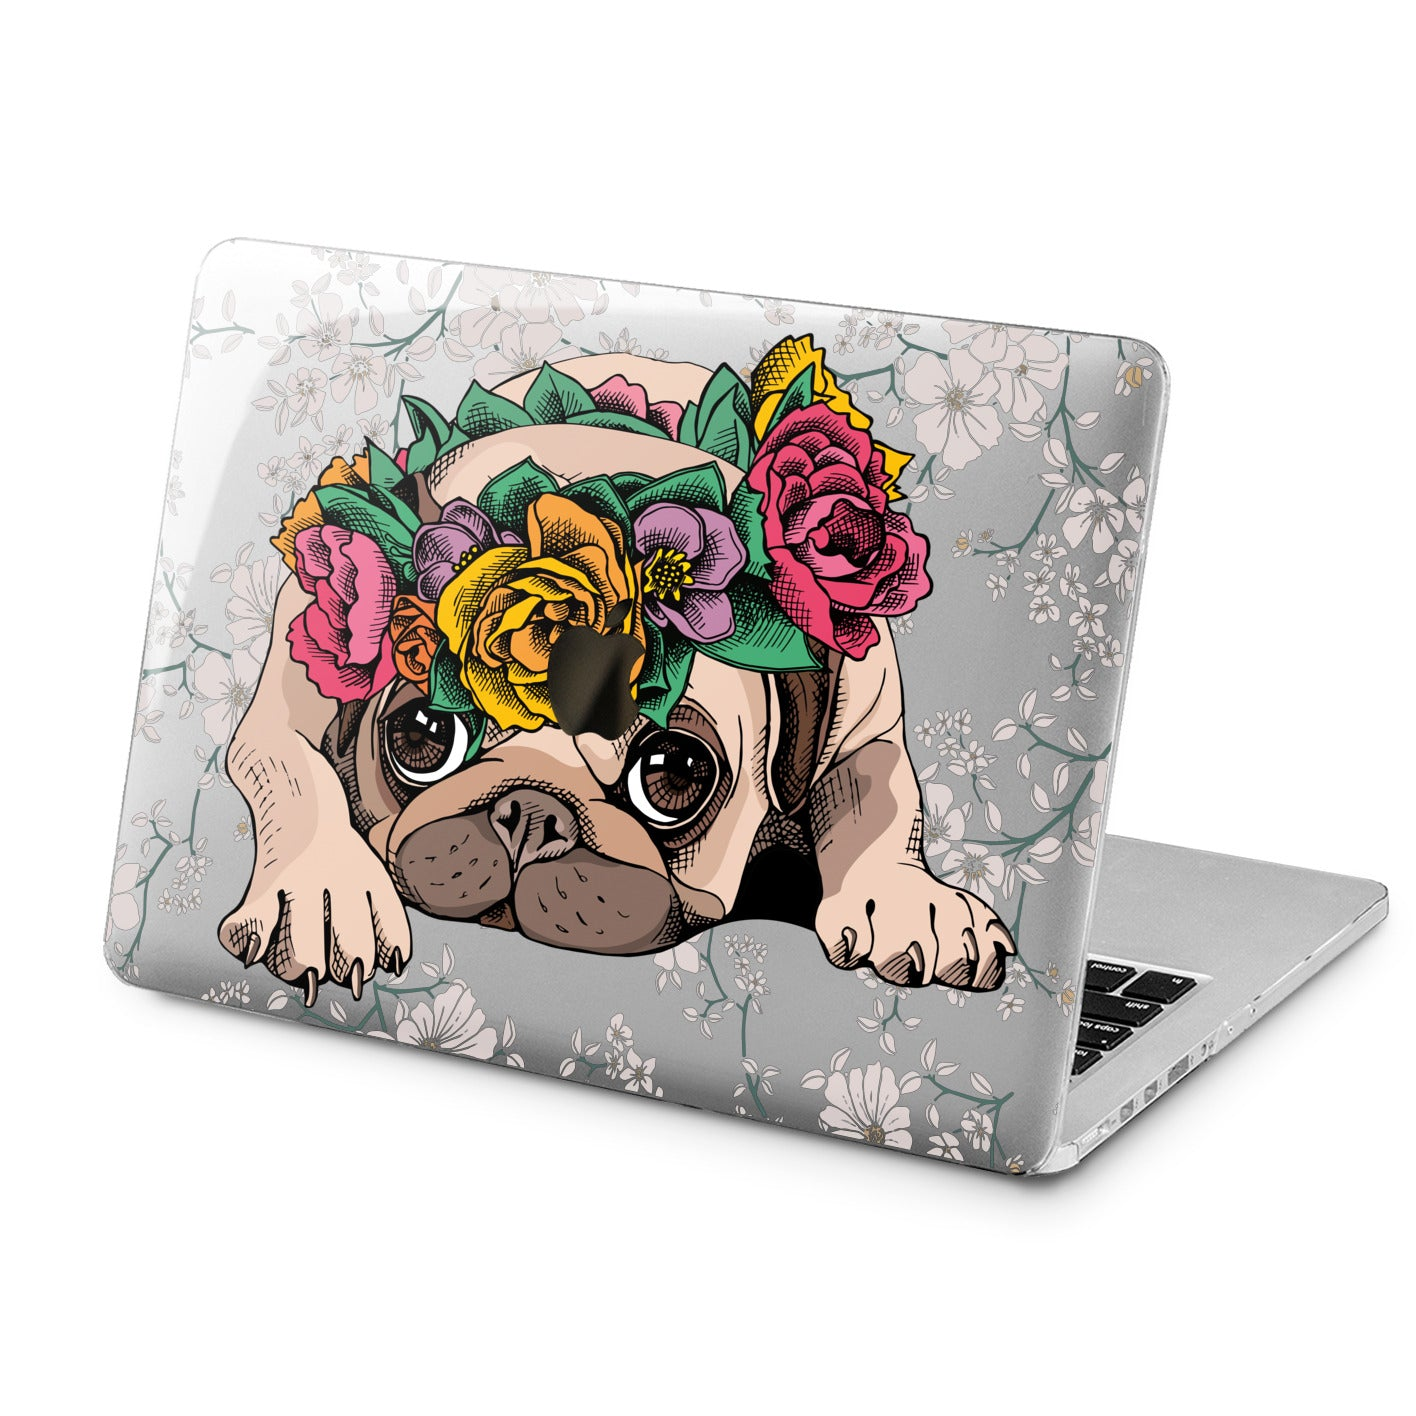 Lex Altern Lex Altern Floral Pug Case for your Laptop Apple Macbook.